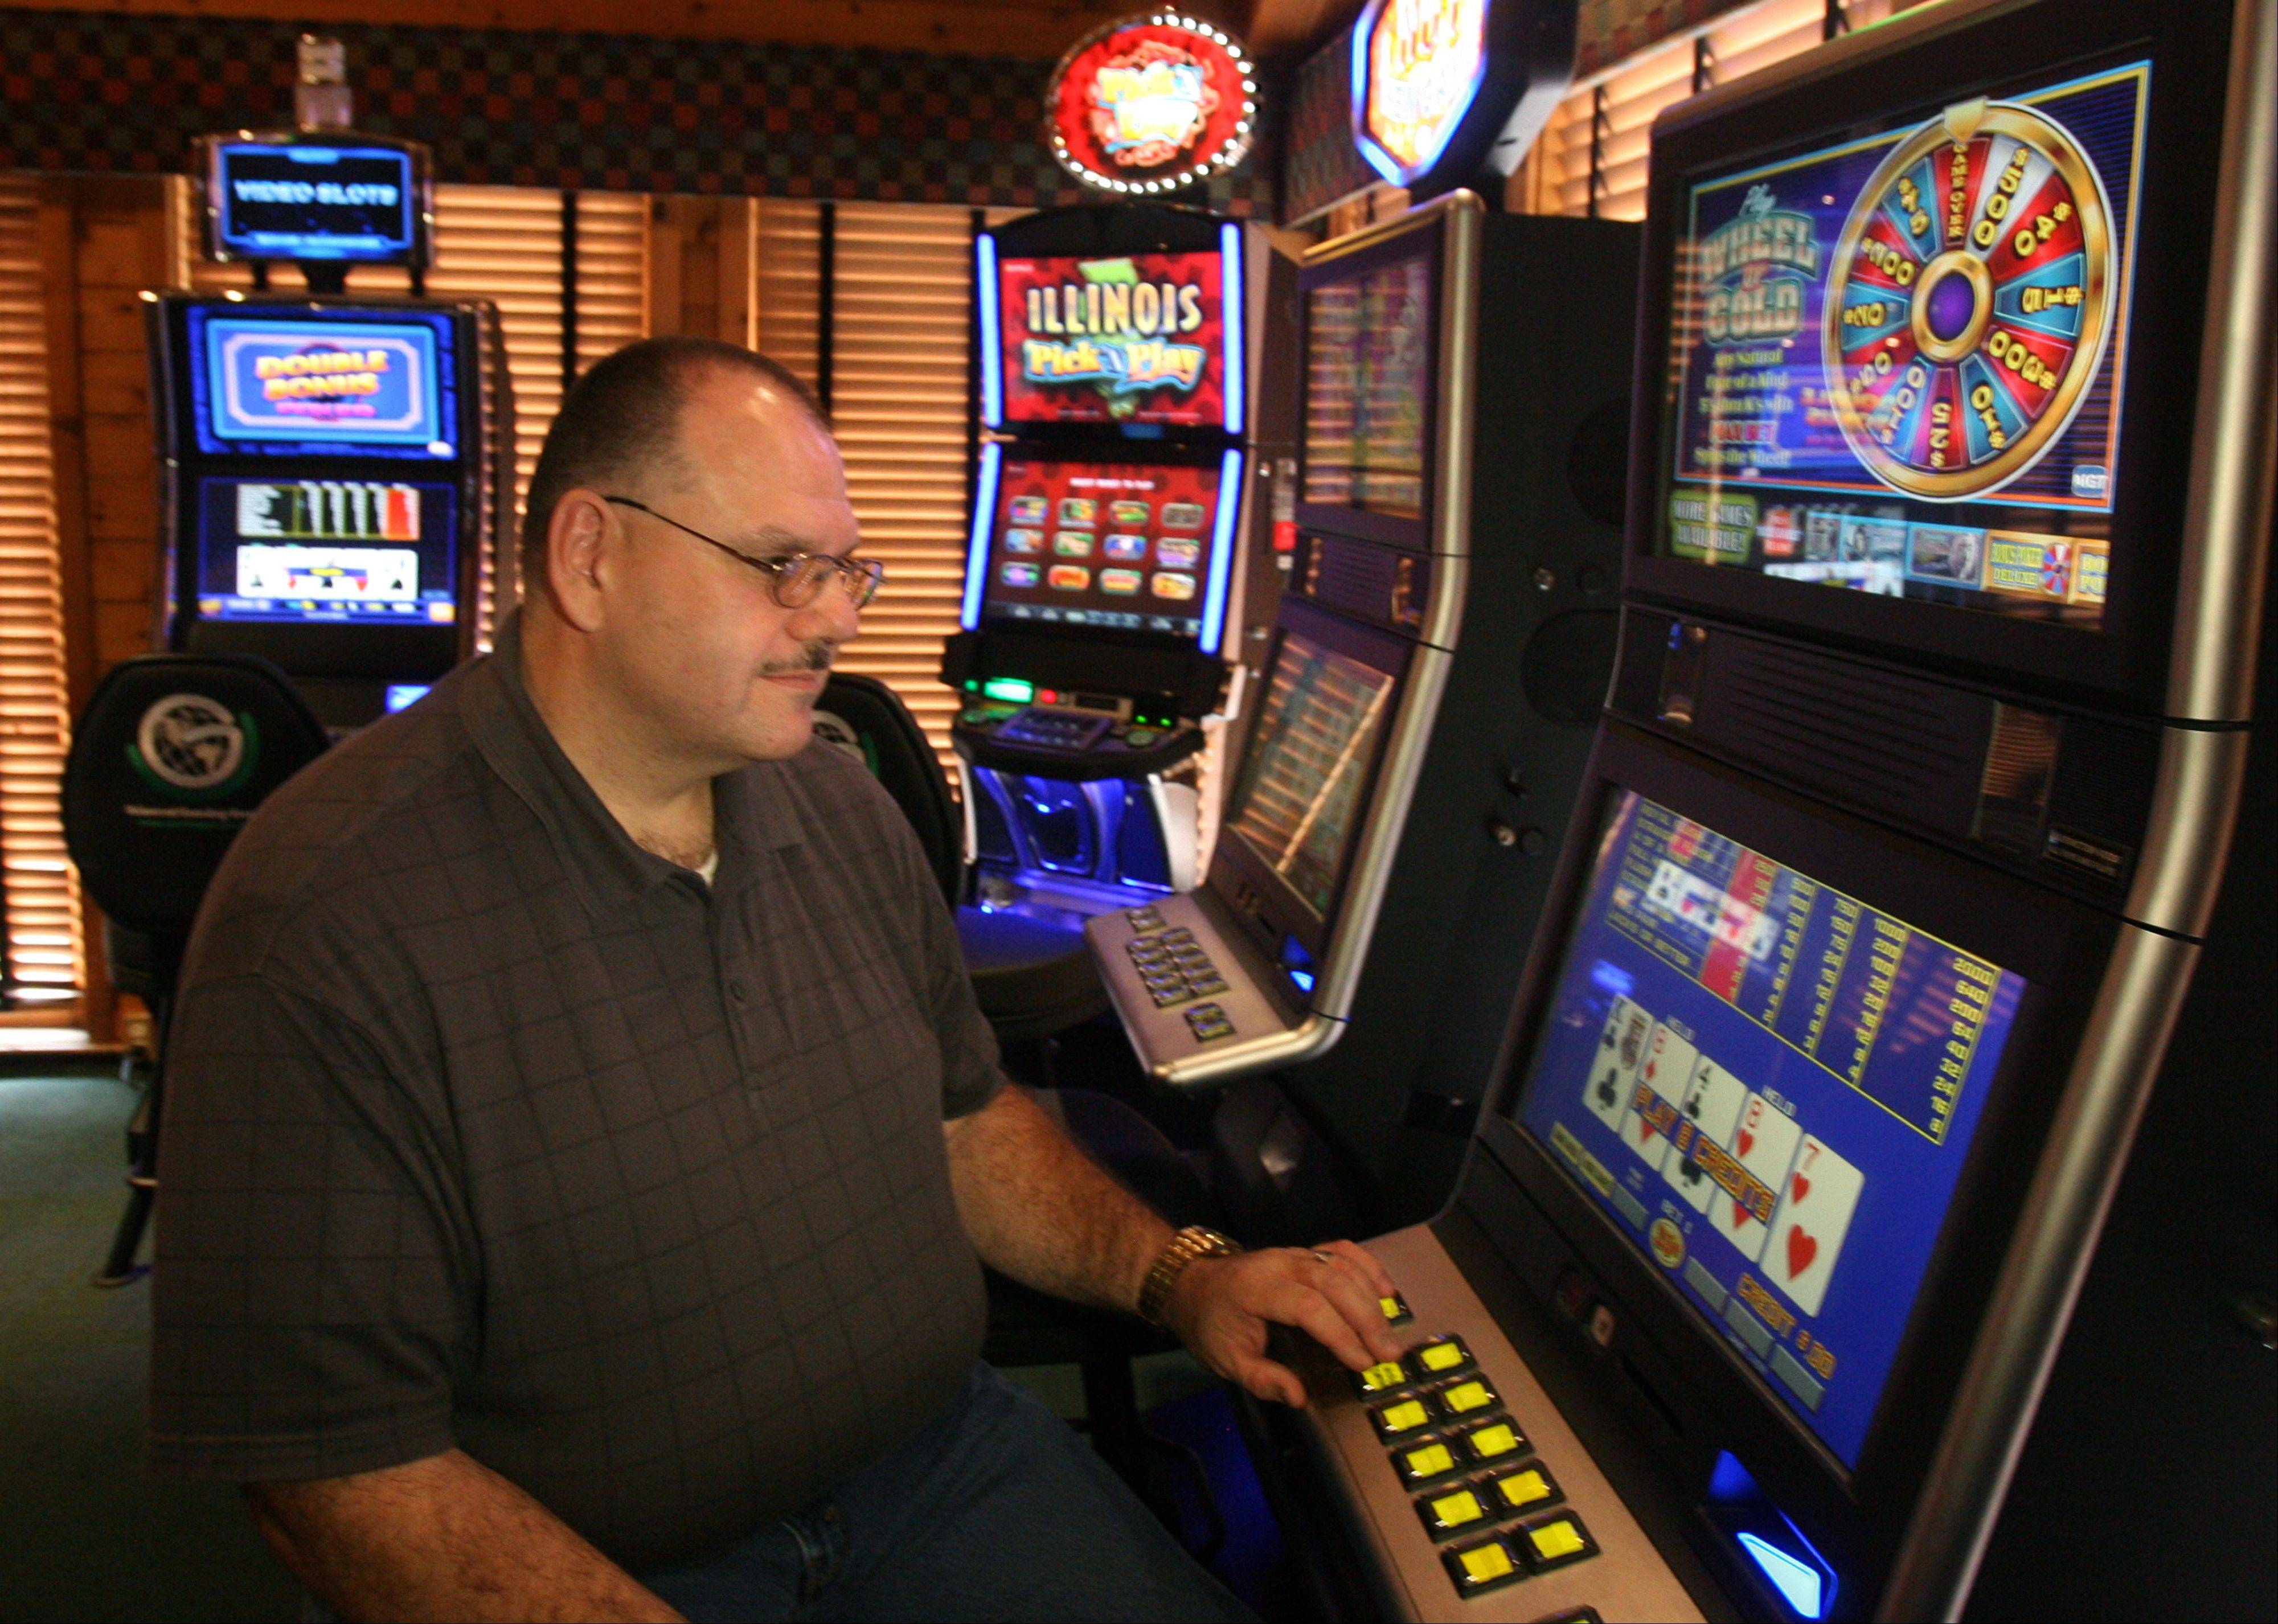 Video gambling machines have begun appearing in suburban bars and other establishments. They could be in Mundelein soon.